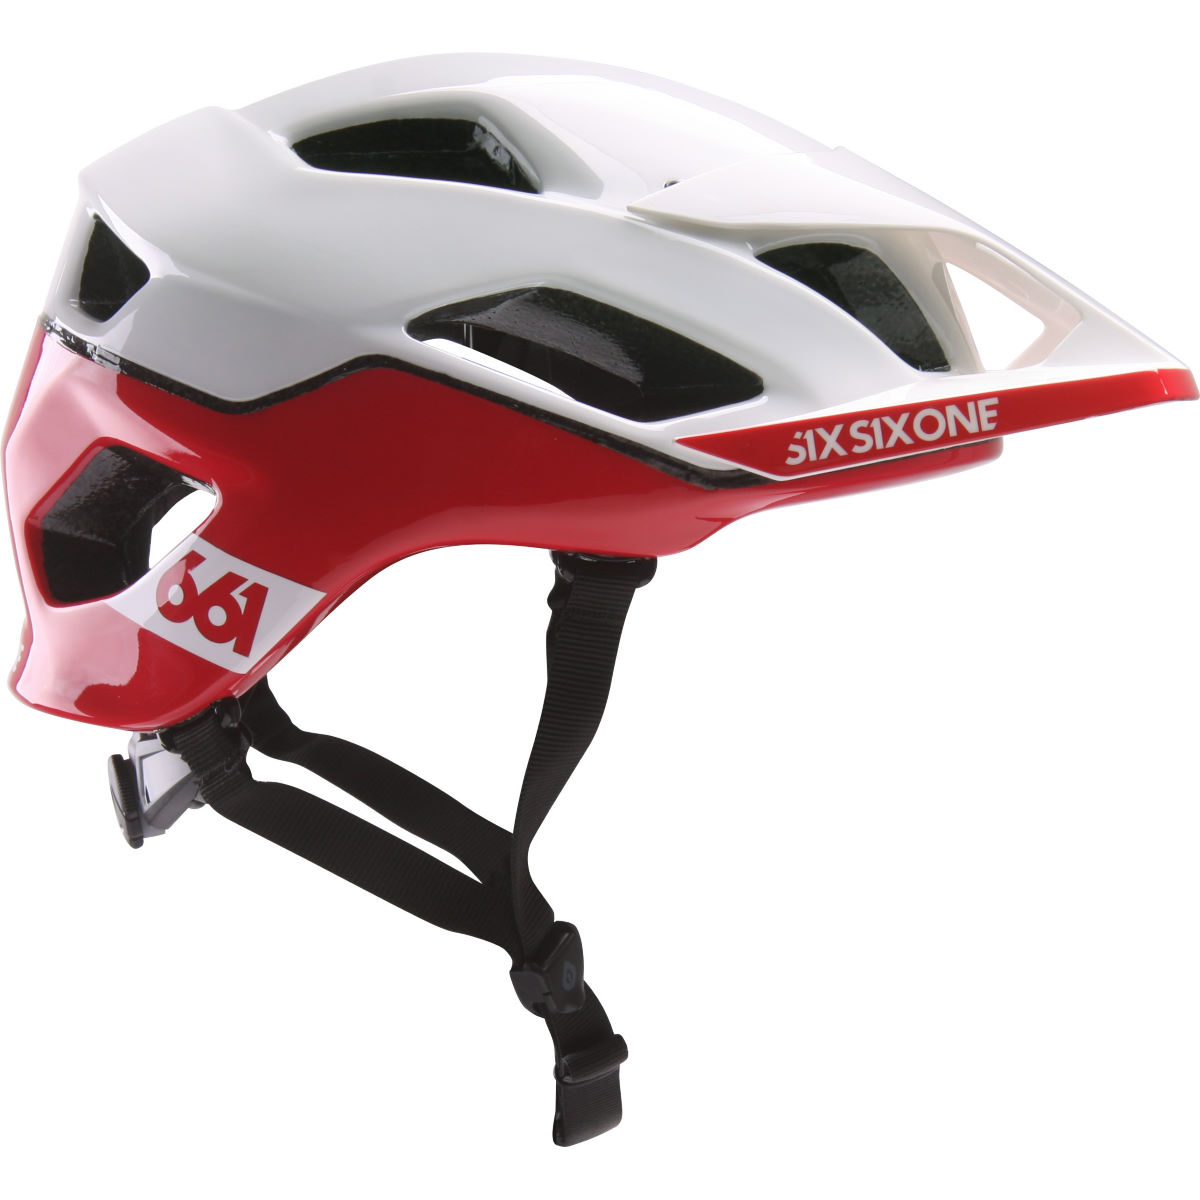 Casque SixSixOne Evo AM Patrol MIPS - XL/2XL Blanc/Rouge Casques